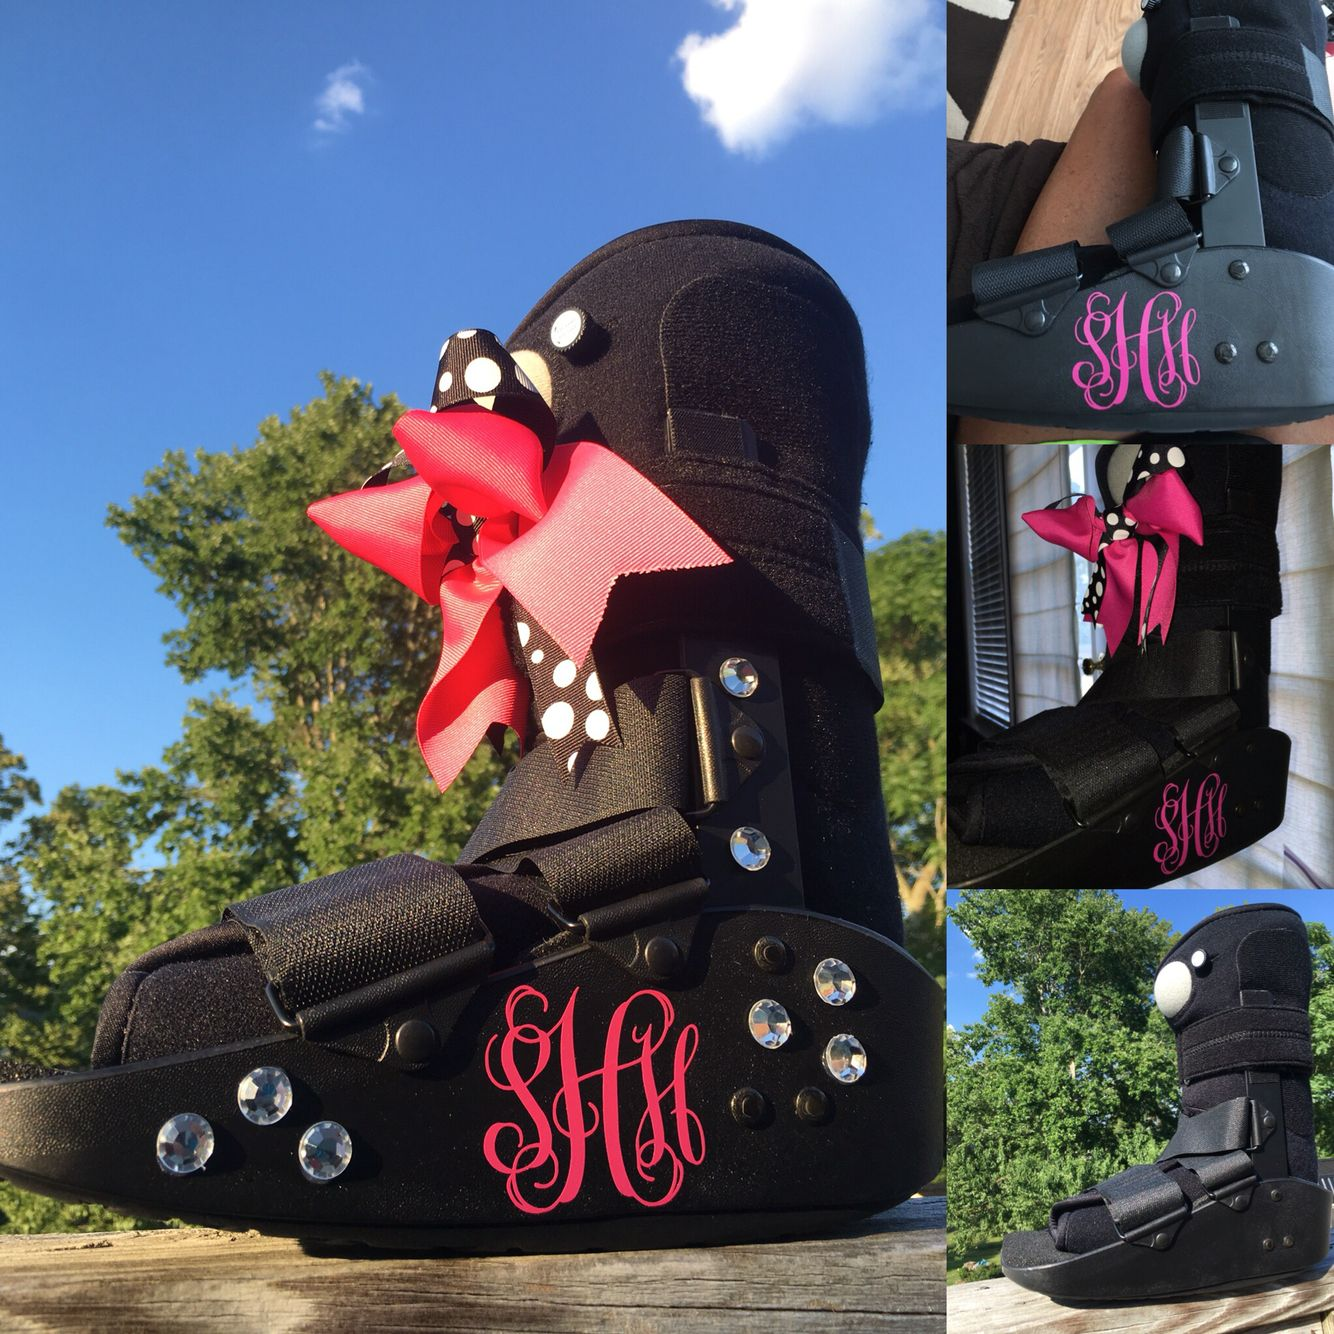 Bling and bow options for a walking boot  Cam walker  Cast